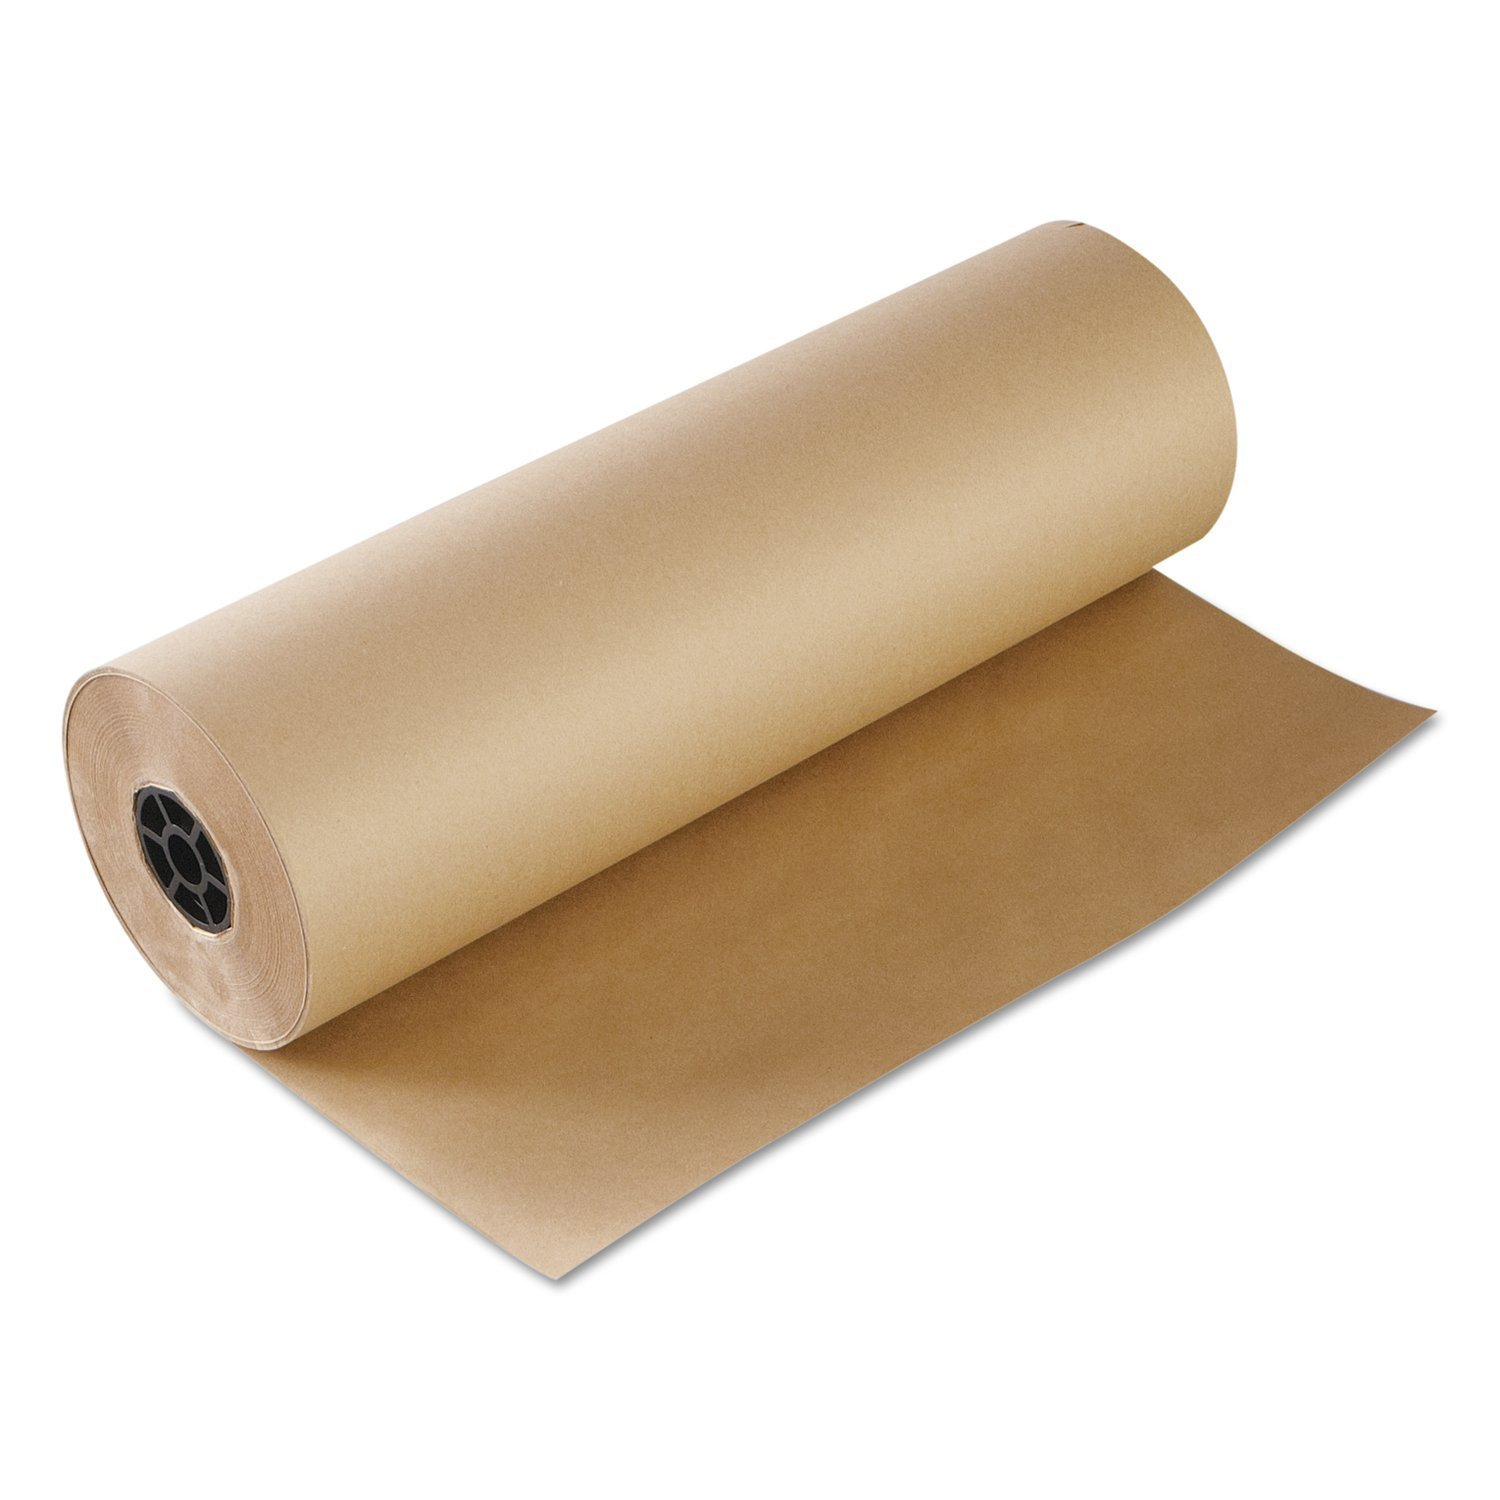 Butcher paper rolls safepro 24kraft 24 inch kraft butcher food paper roll wrapping disposable steak meat jeuxipadfo Images